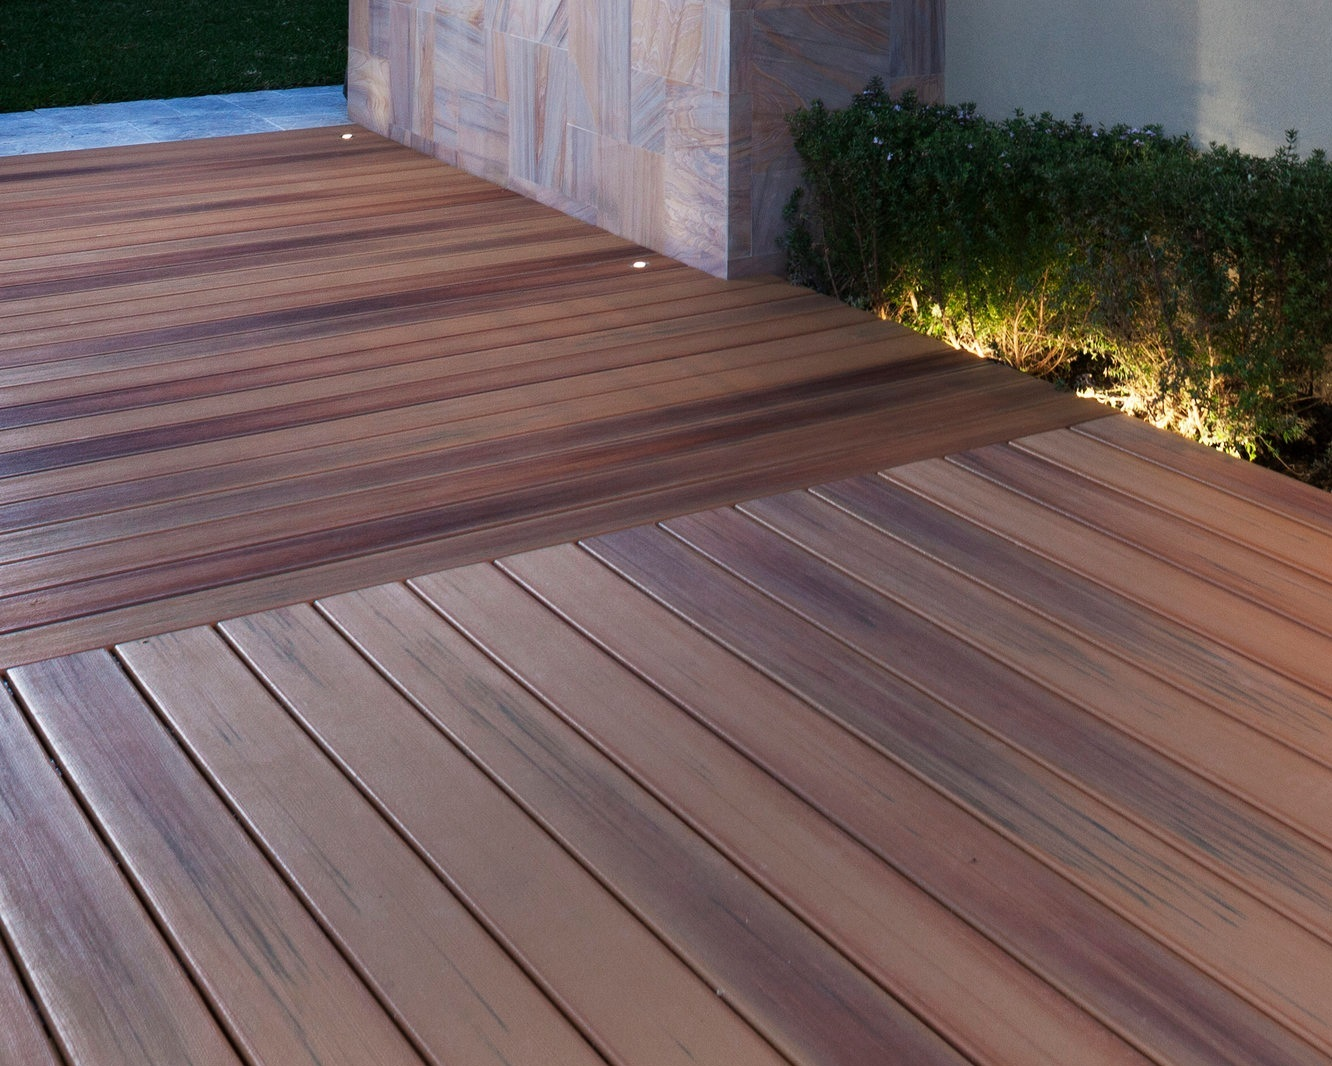 Composite Decking - DuraLife Composite Decking, Docks & Boardwalks